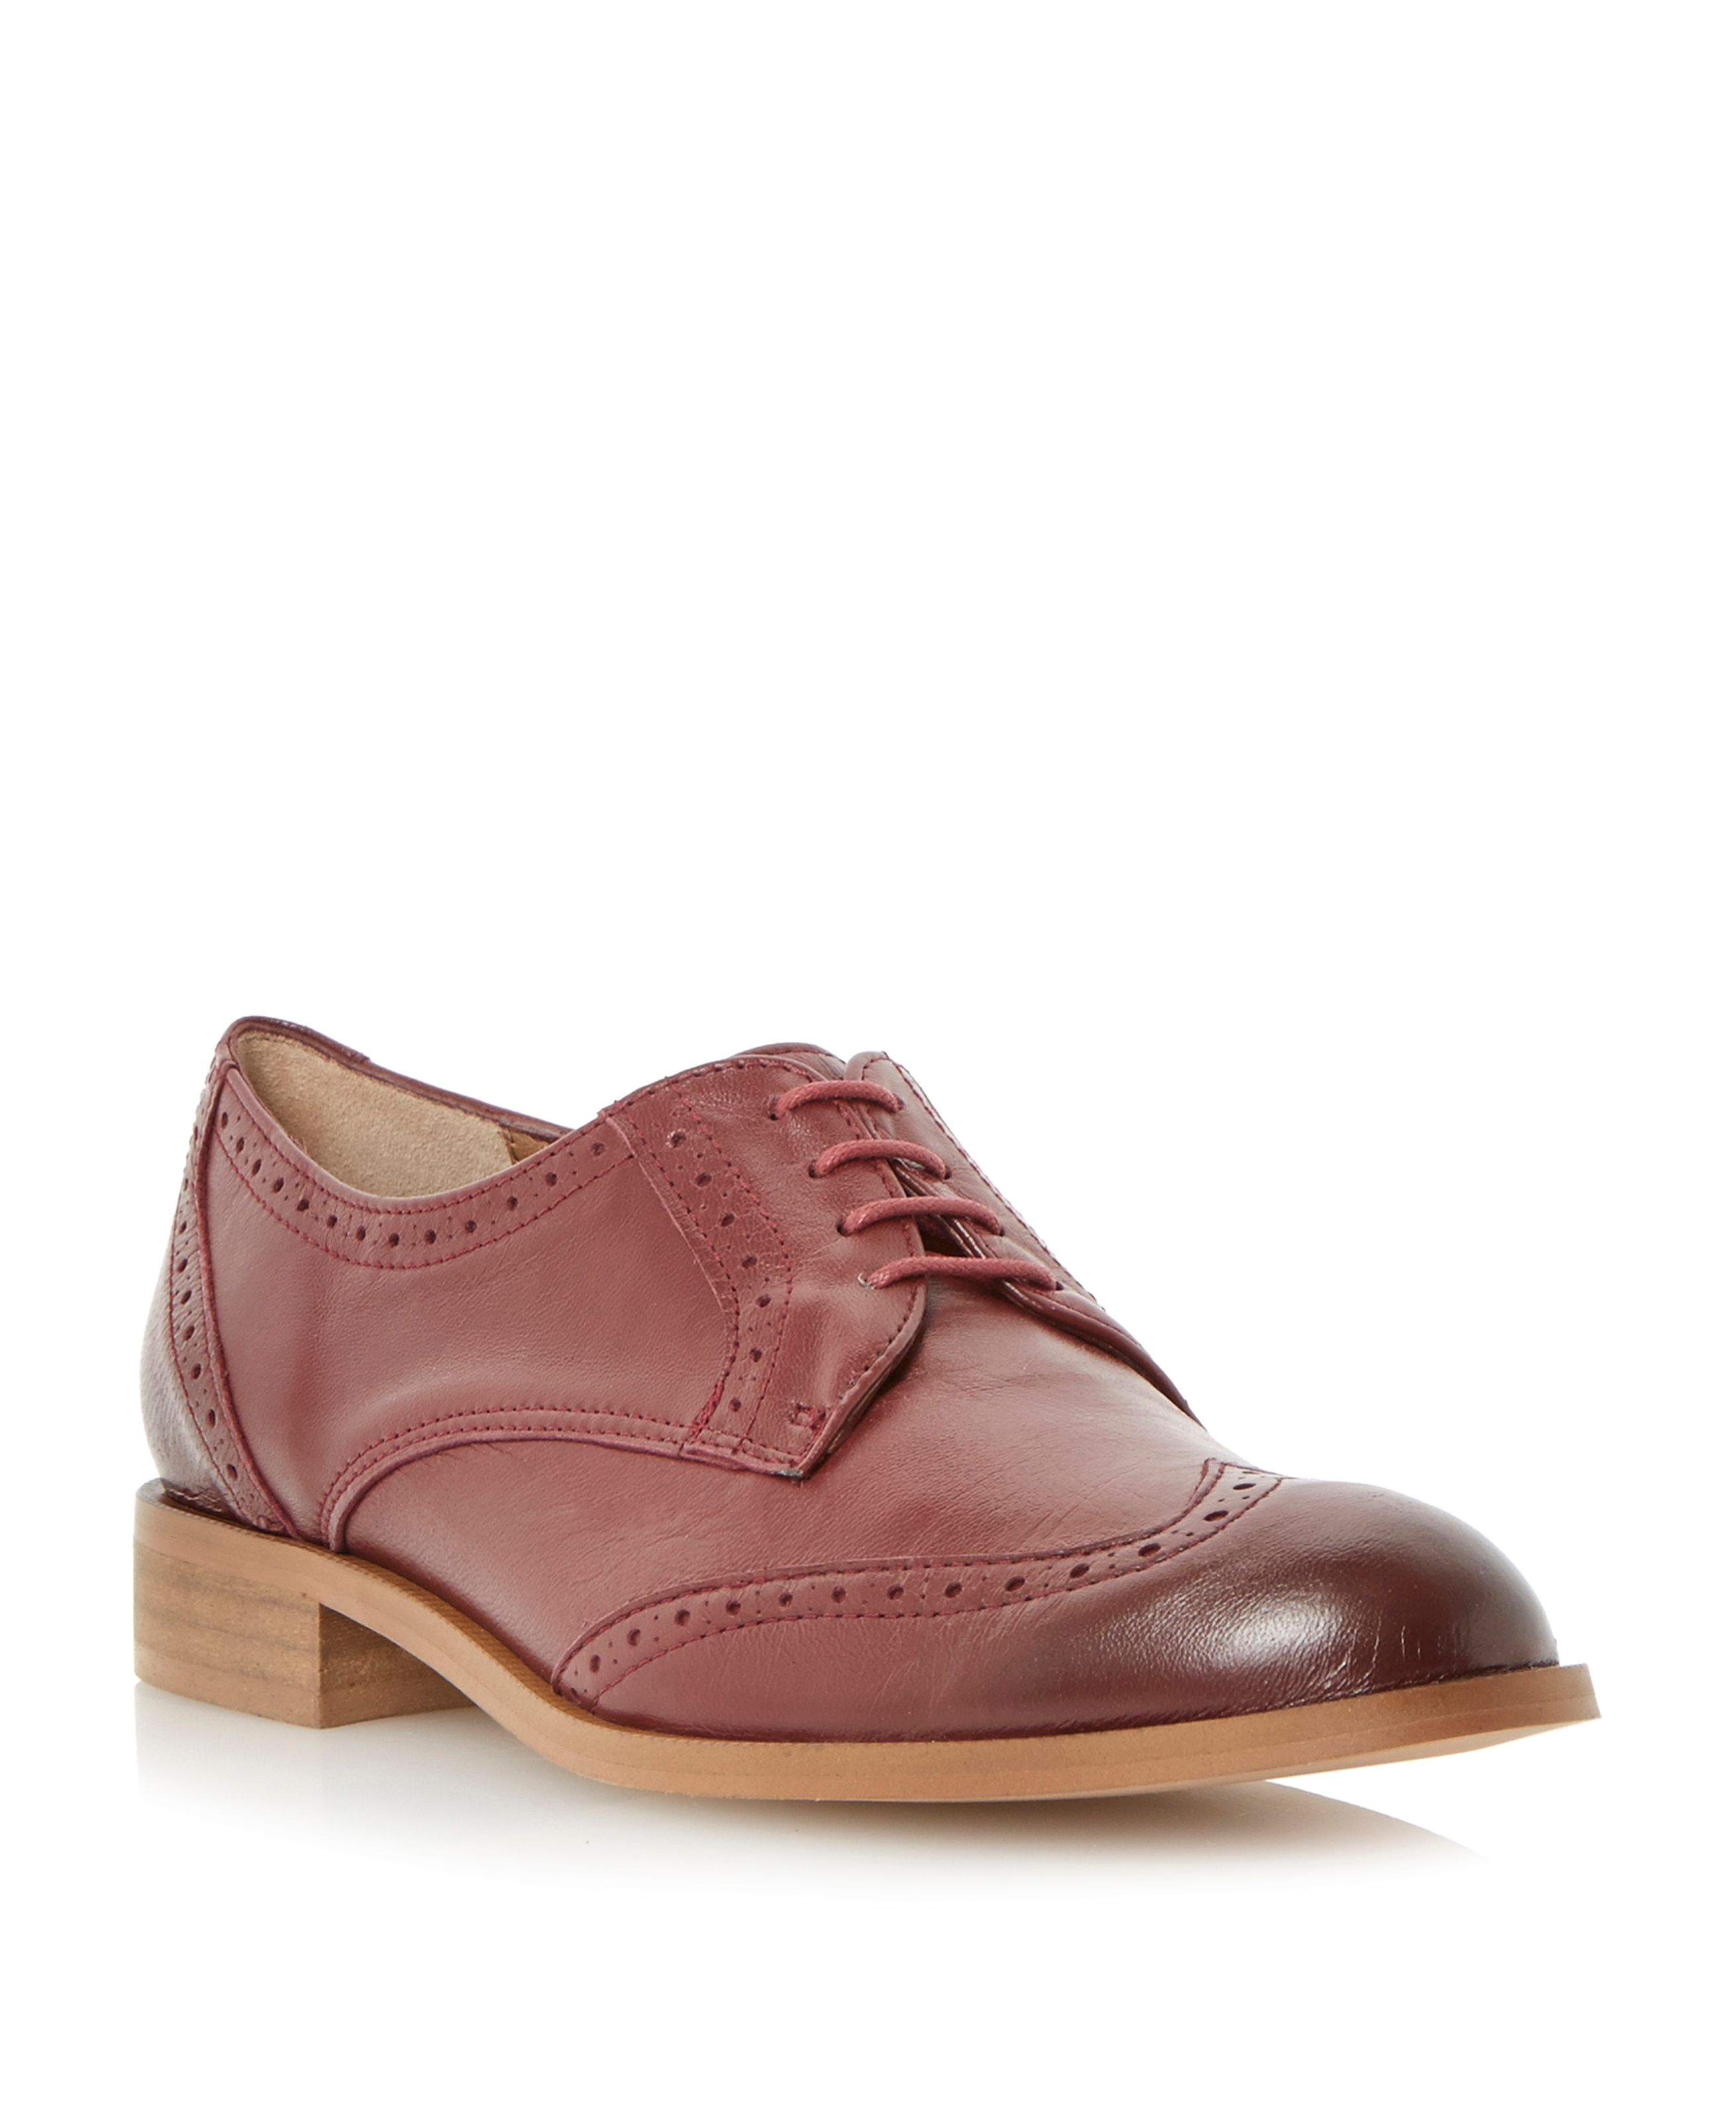 Leslee lace up brogues